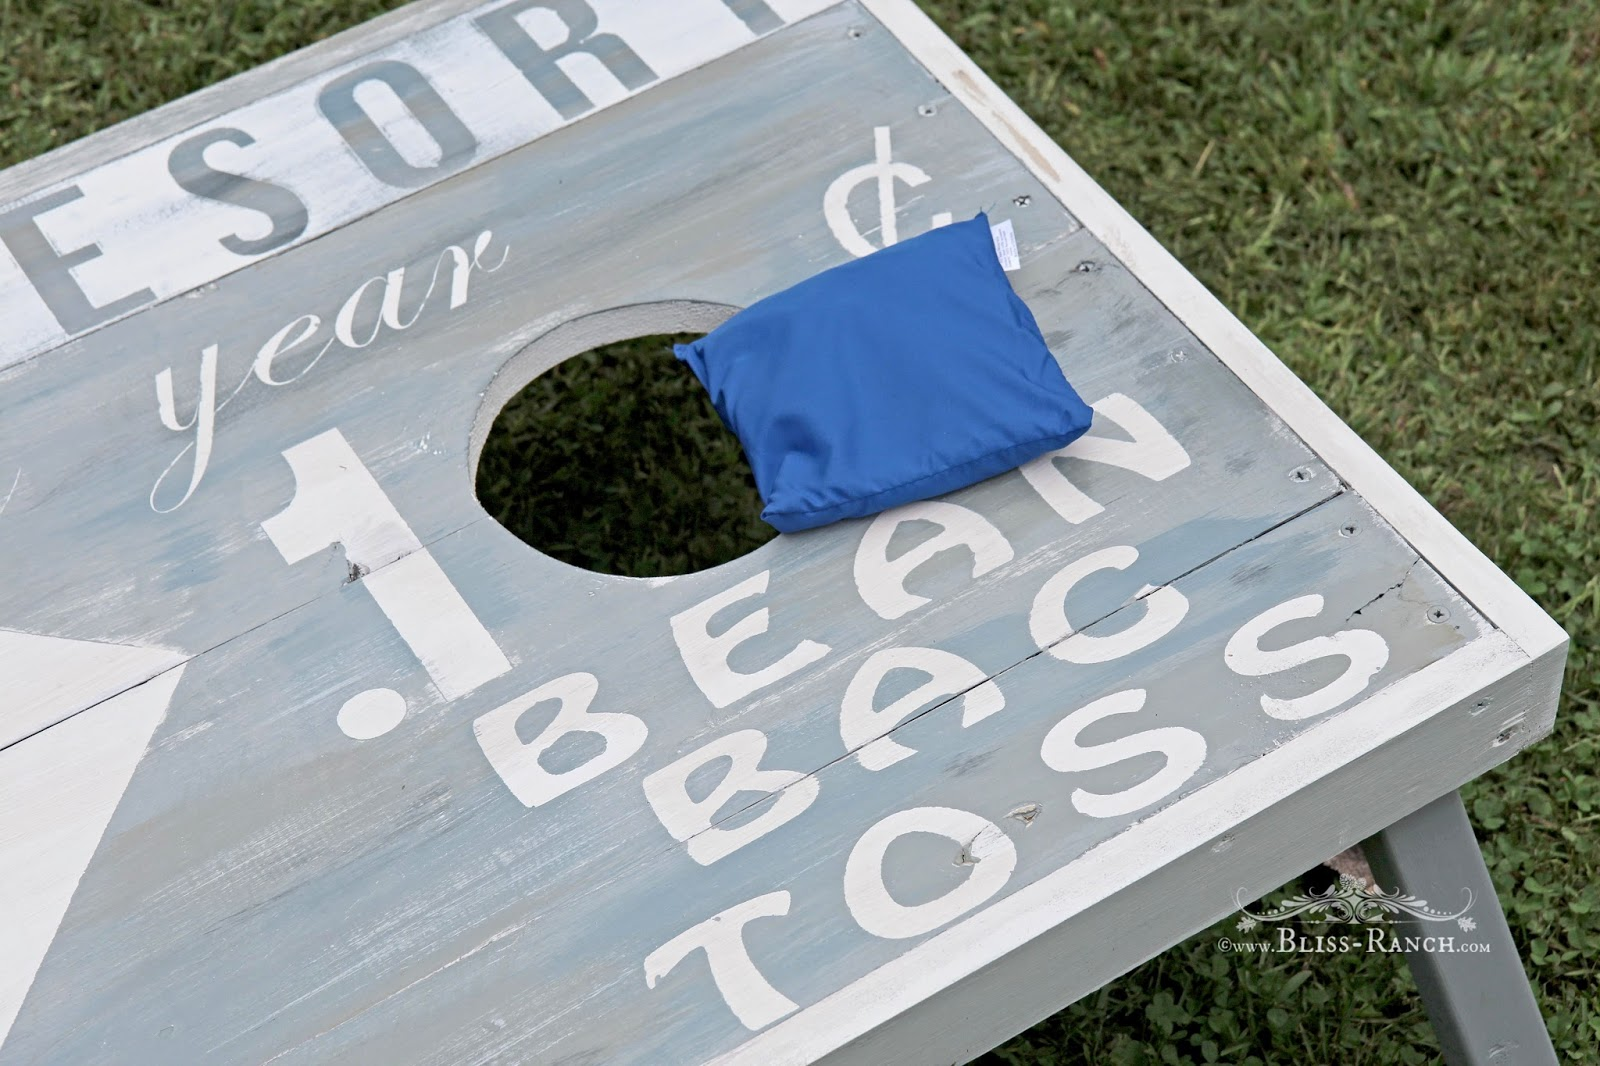 Bean Bag Toss Yard Game Bliss-Ranch.com #maisonblanchepaint  #paintedfurniture #ad